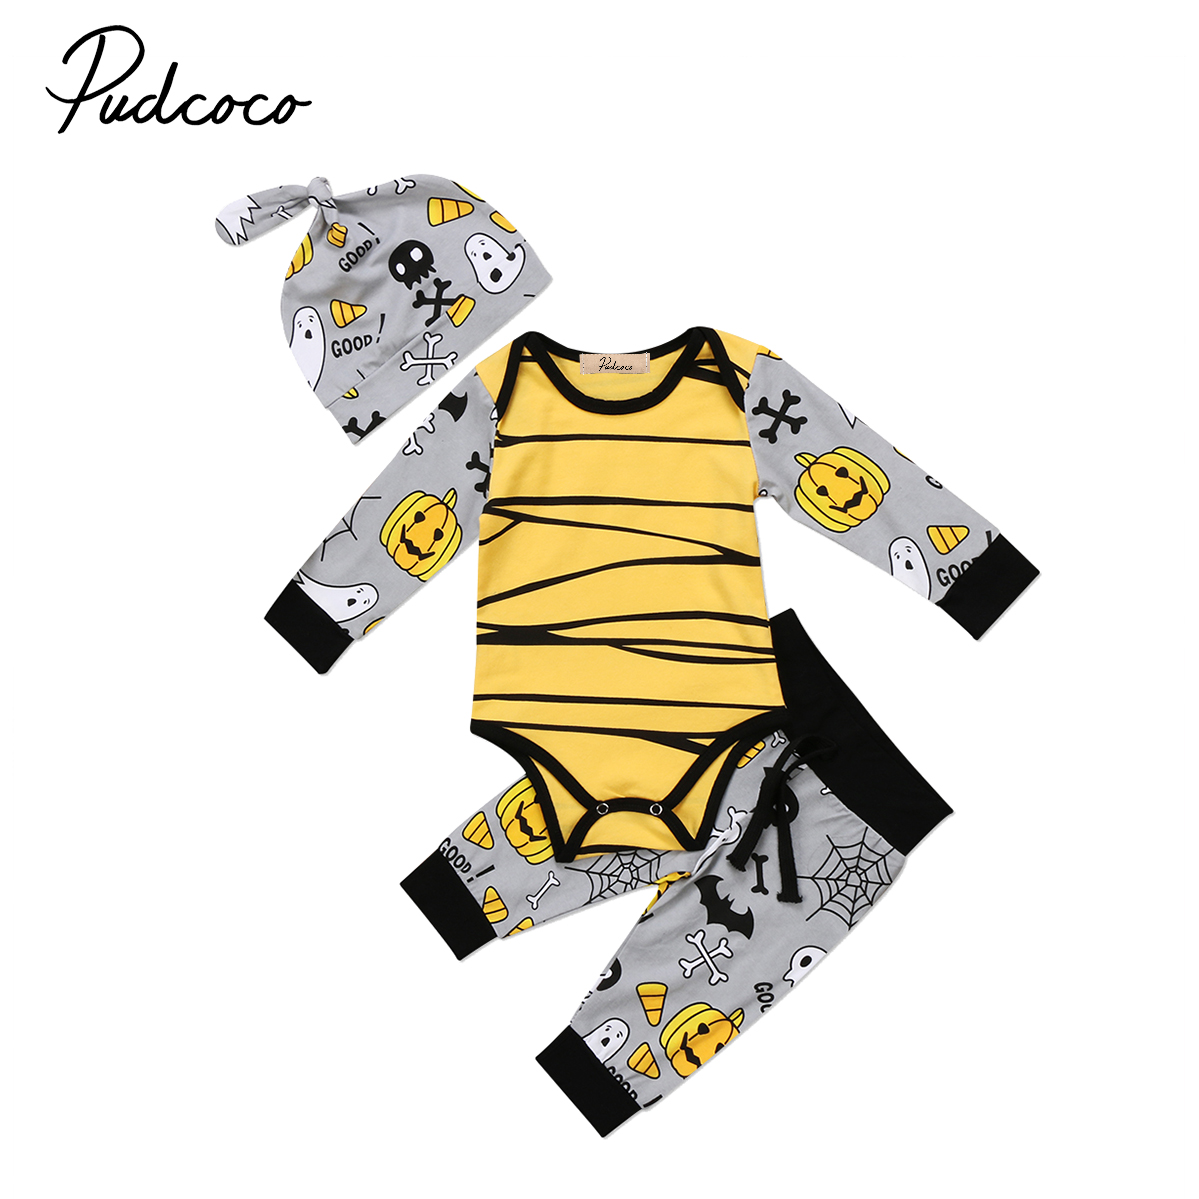 Pudcoco 2017 Cute Baby Boys Girls Halloween Clothes Pumpkin Stripes Long Sleeve Romper T ...